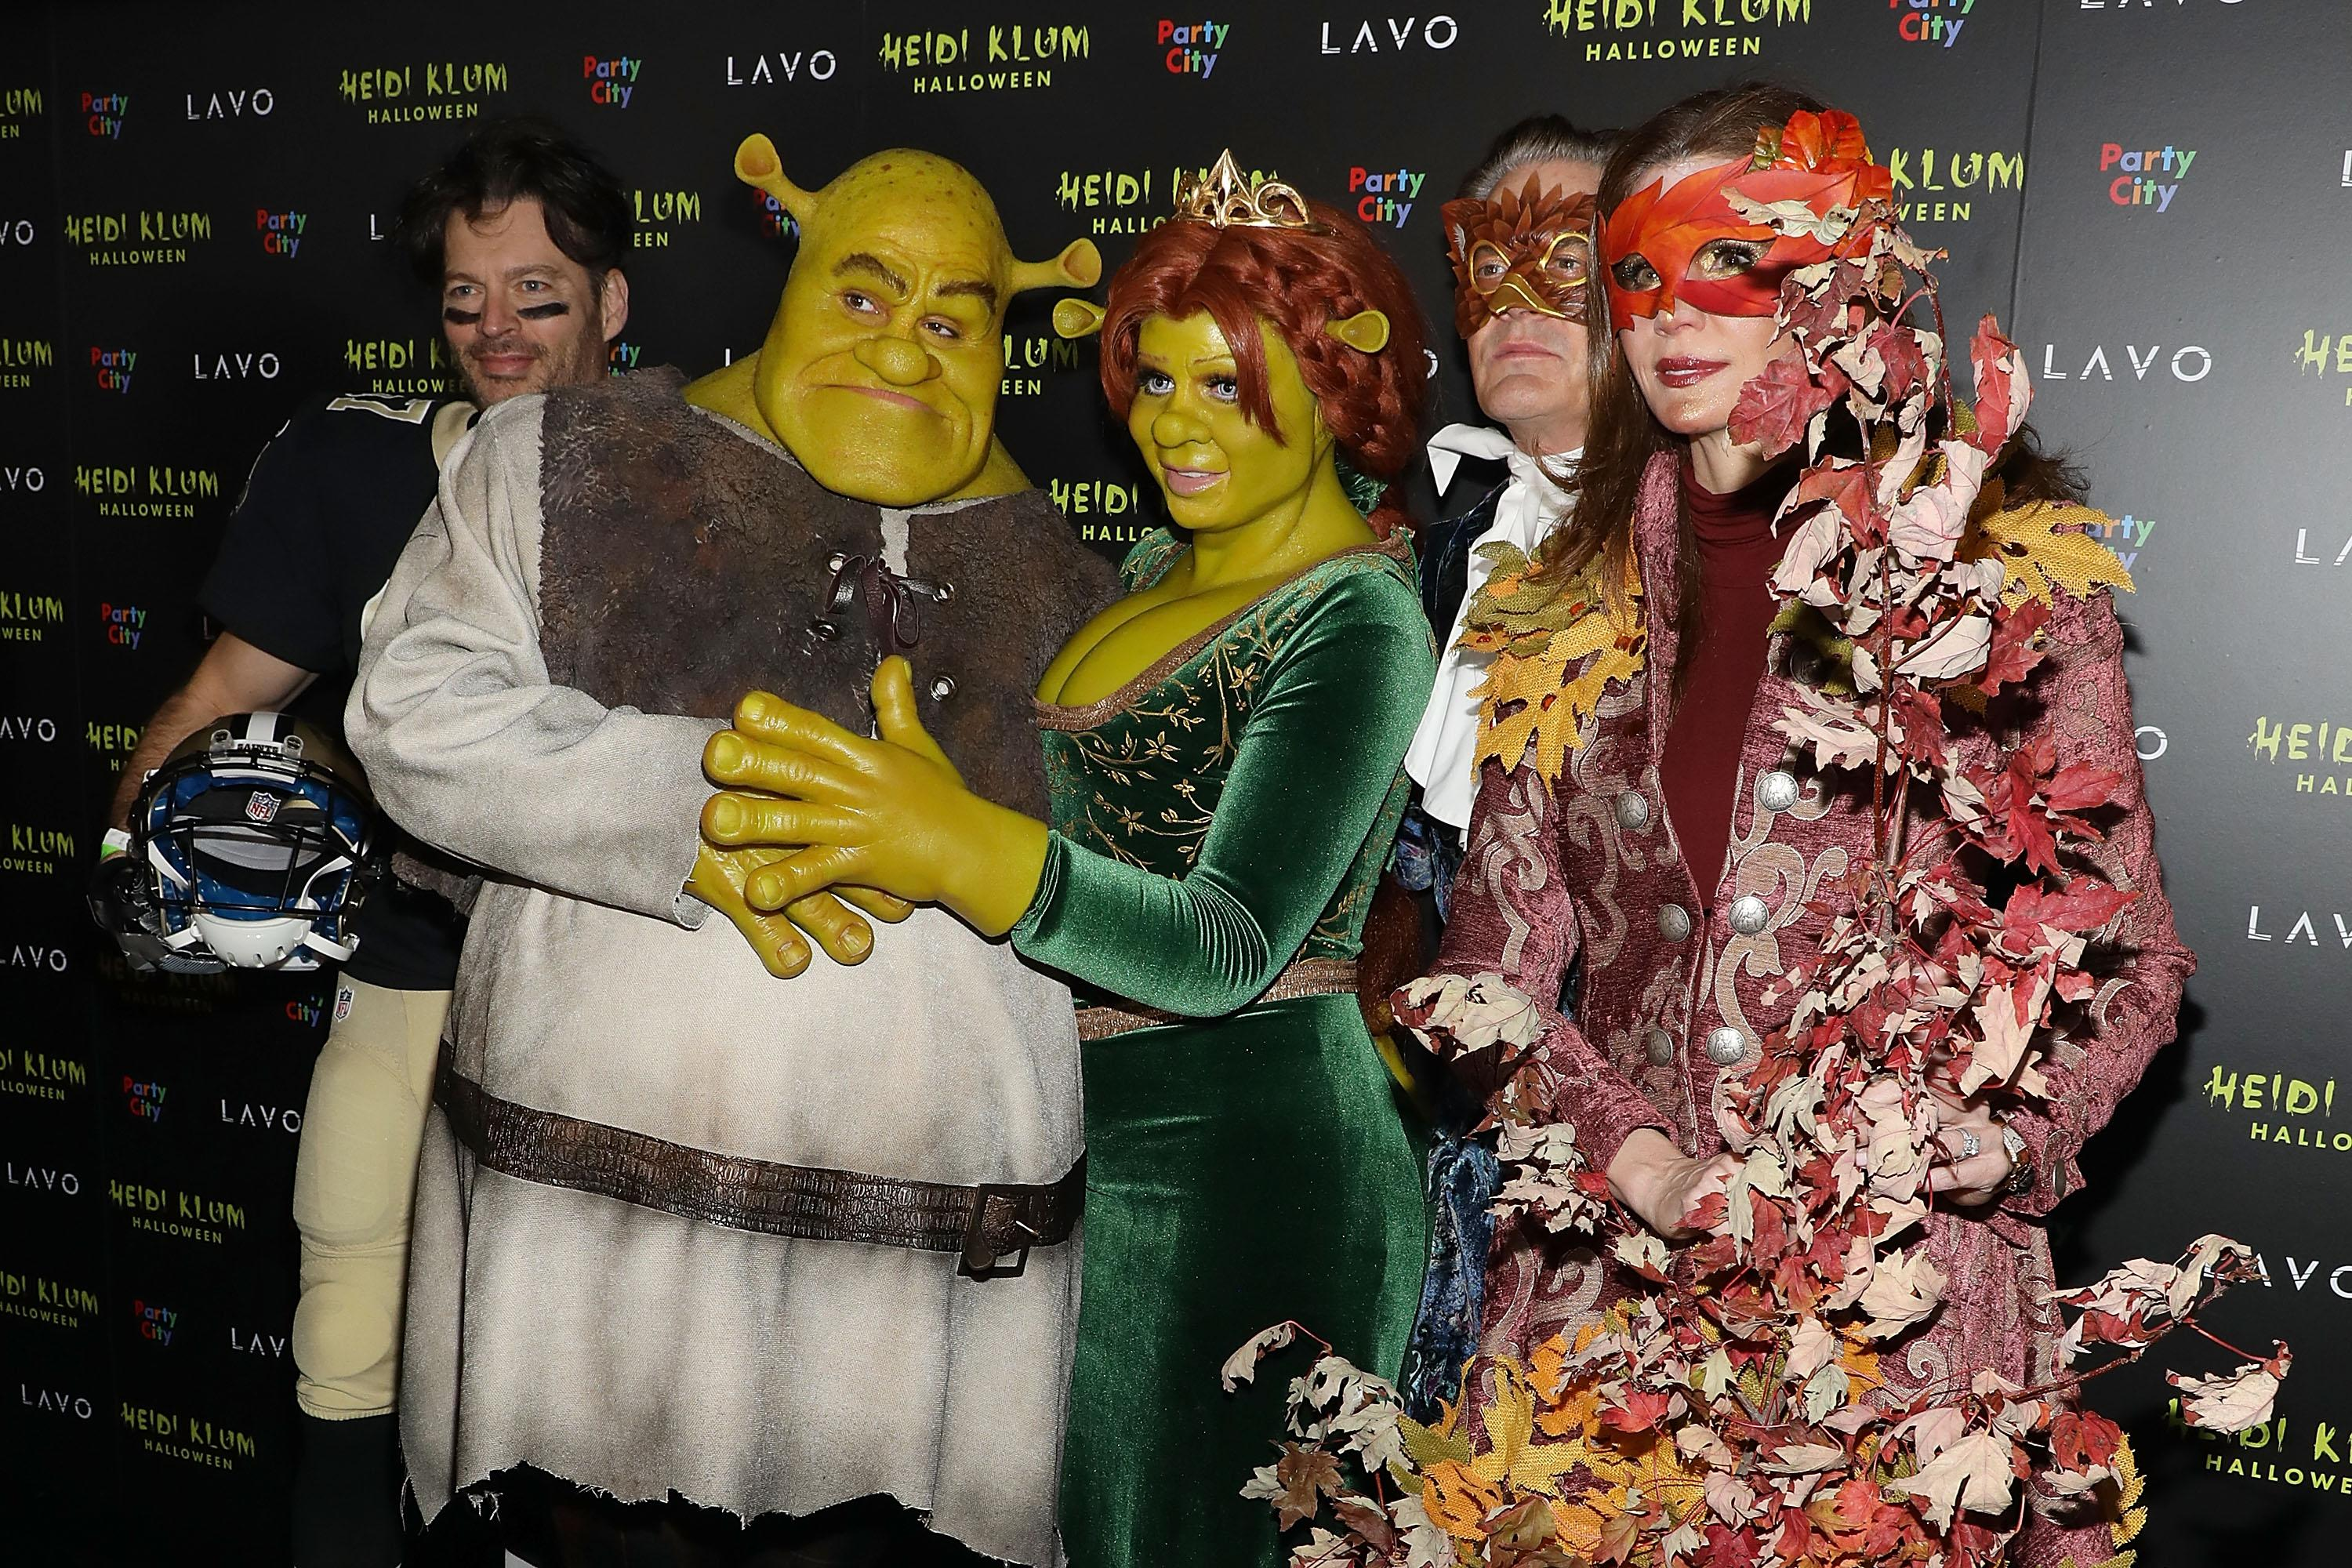 The Most Over-the-Top Costumes From Heidi Klum's Crazy Halloween Party